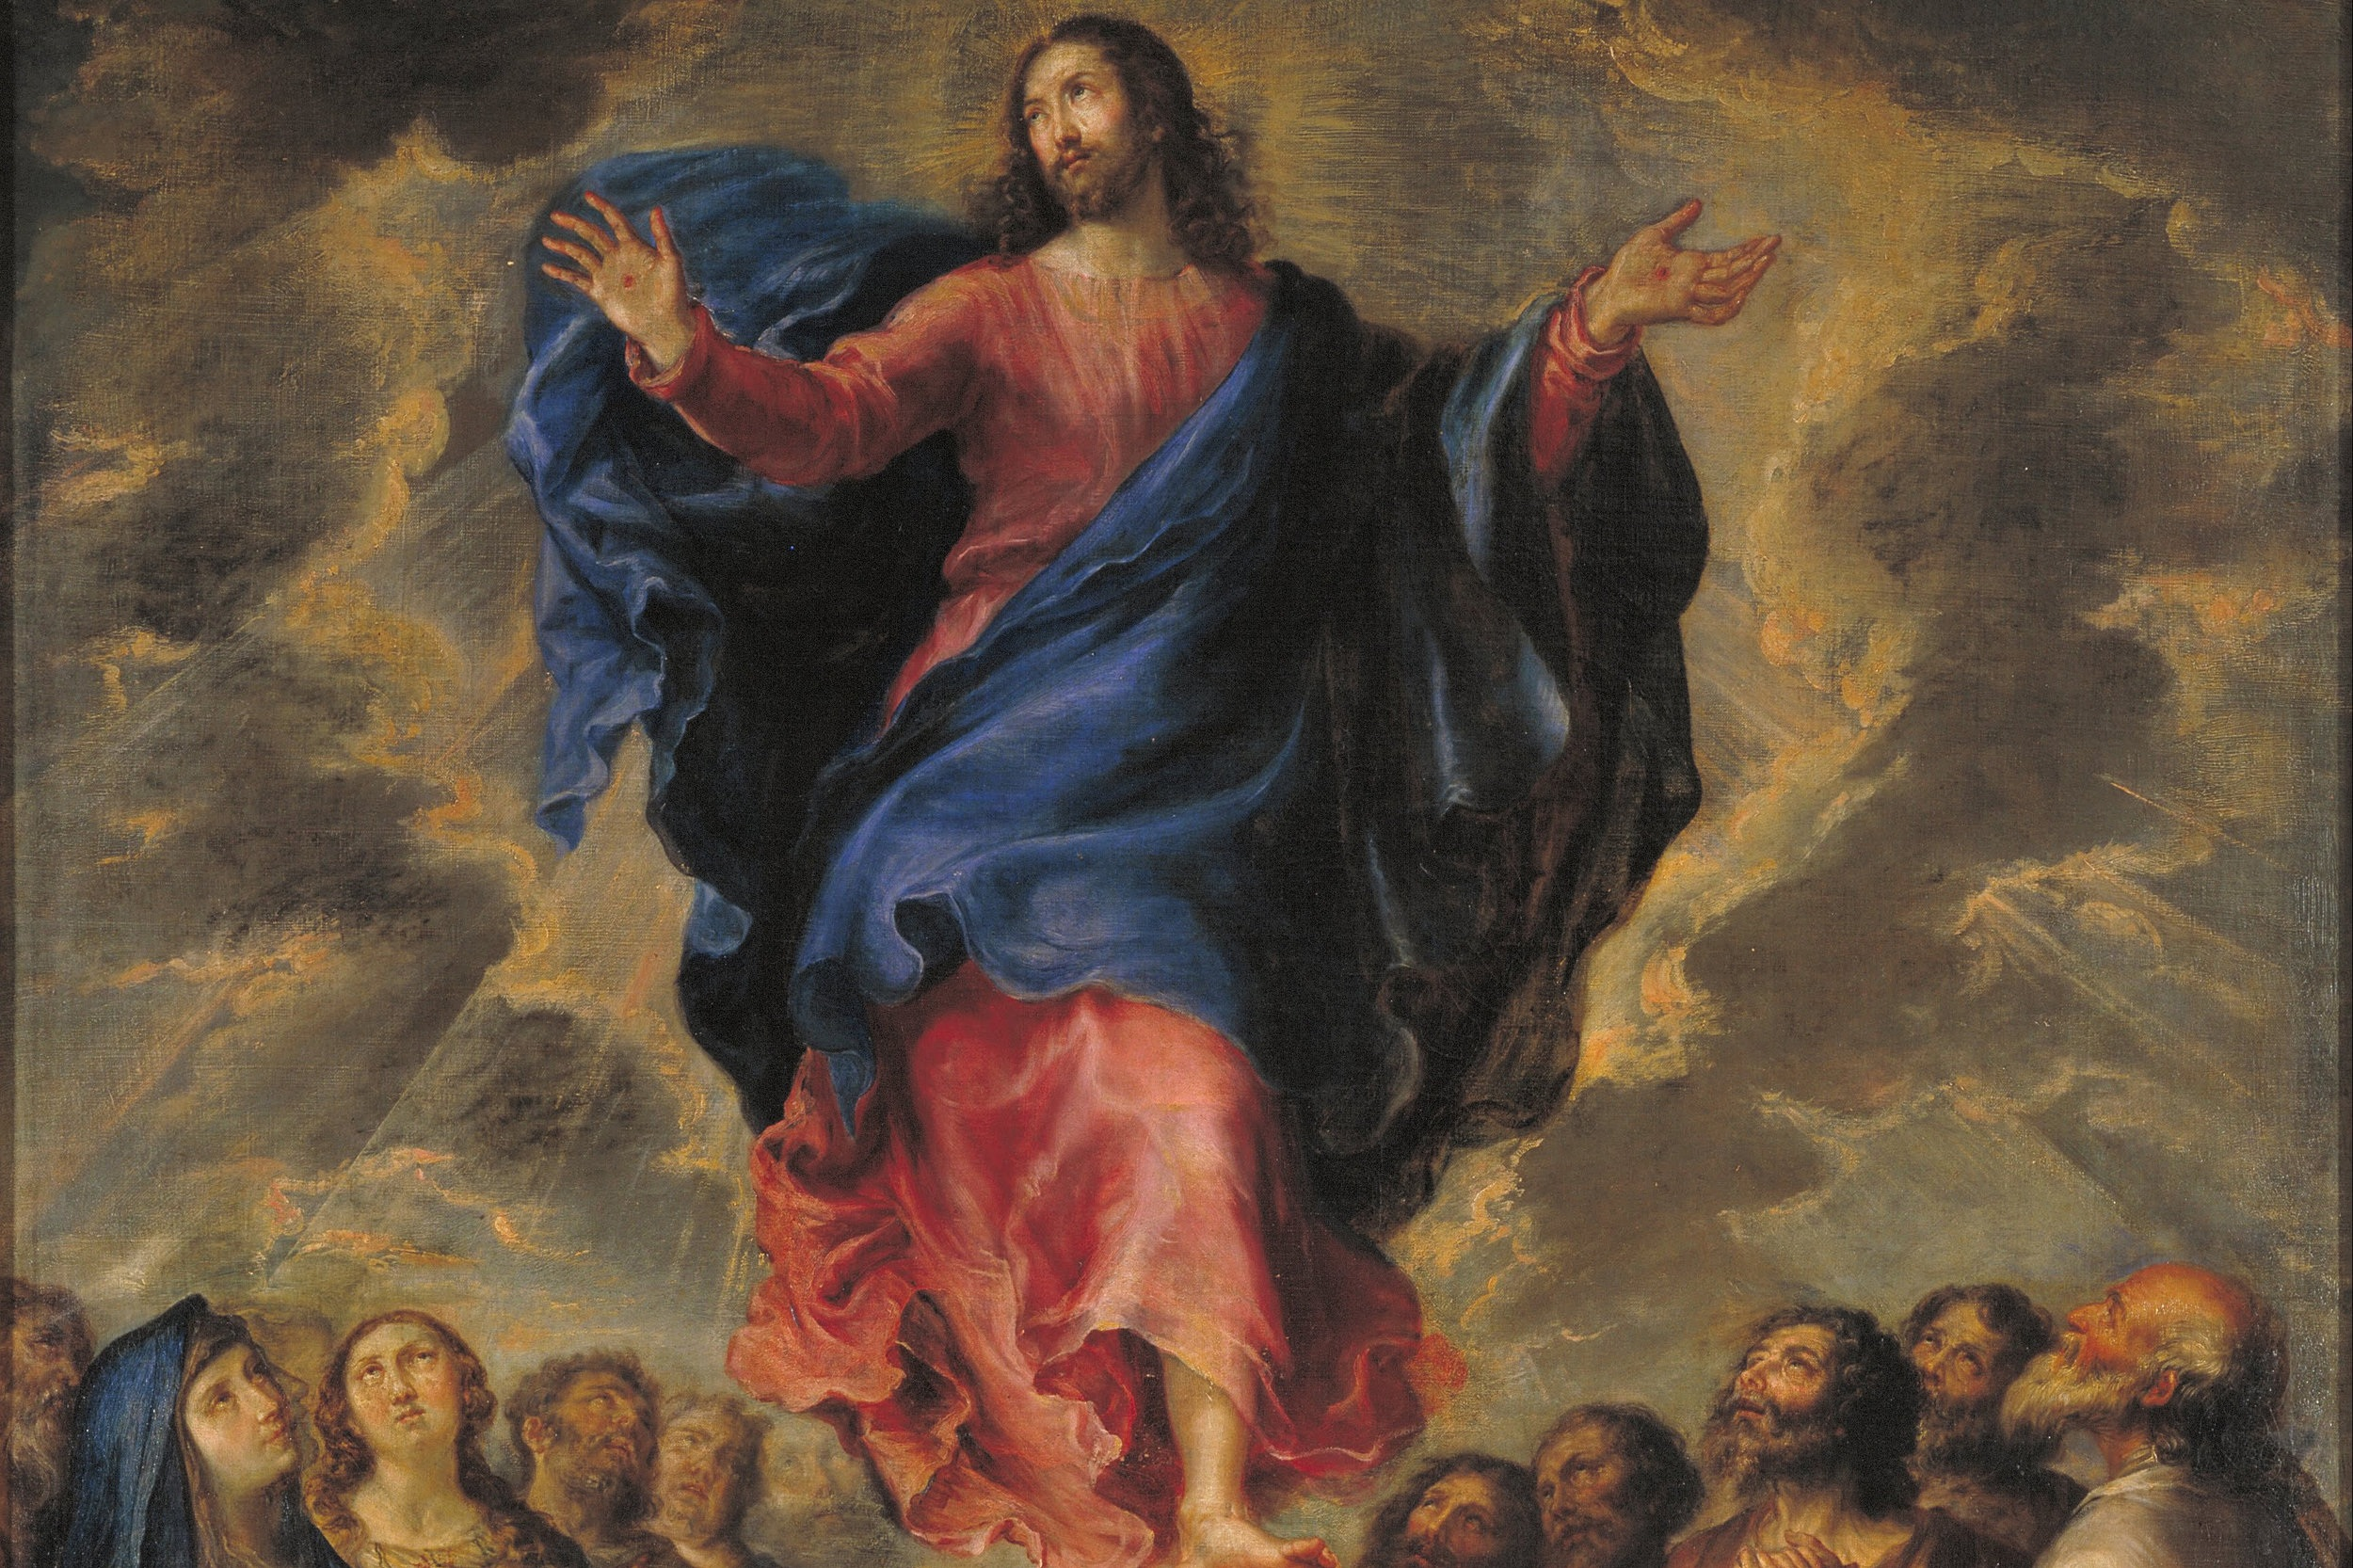 the Ascension of the Lord - Wednesday, May 20:7:30pmThursday, May 21:8:00am⎜12:00pm⎜7:30pm (Spanish)